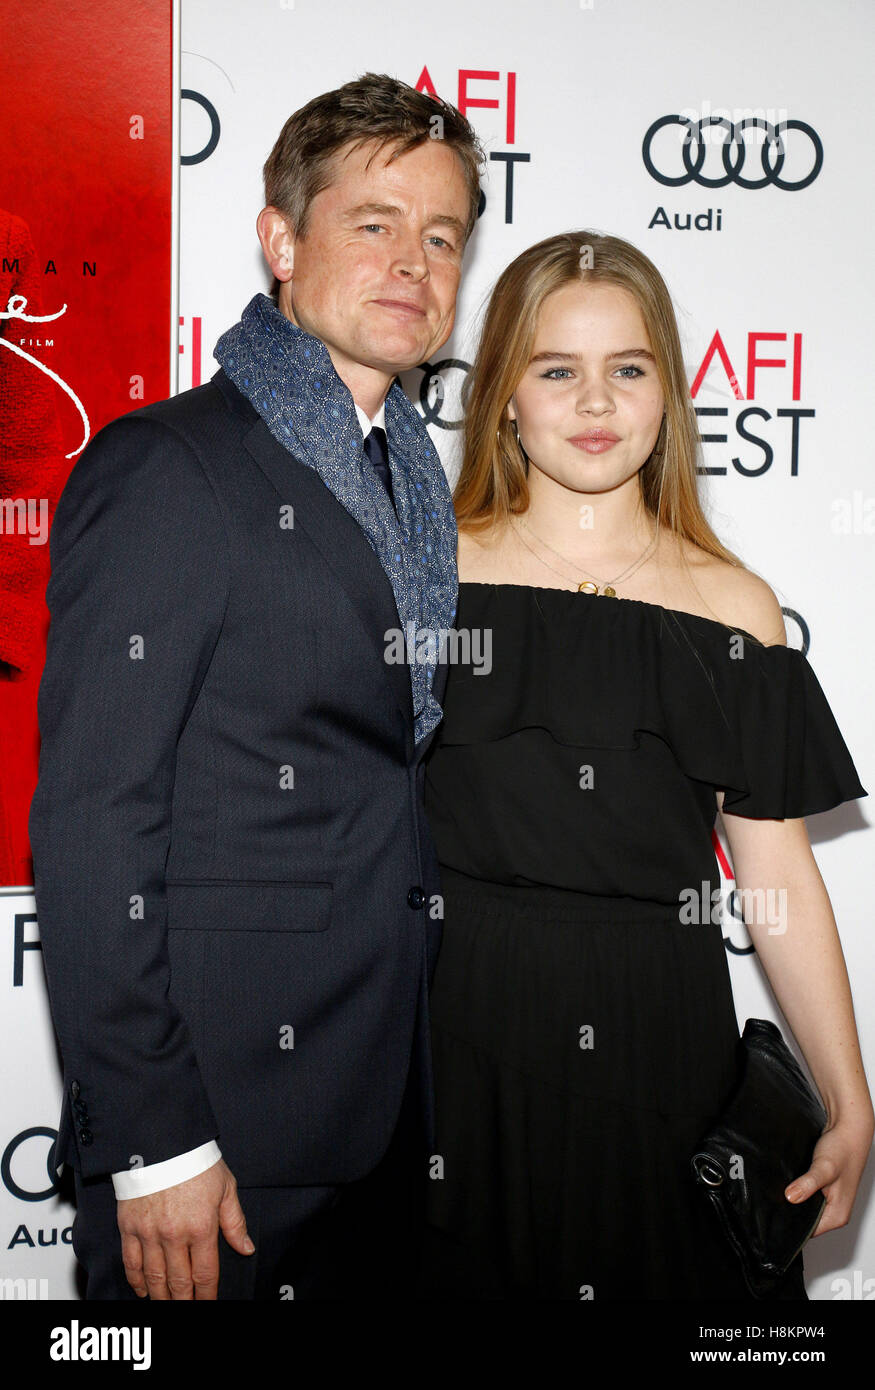 Caspar Phillipson at the AFI FEST 2016 Centerpiece Gala Screening of 'Jackie' held at the TCL Chinese Theatre - Stock Image